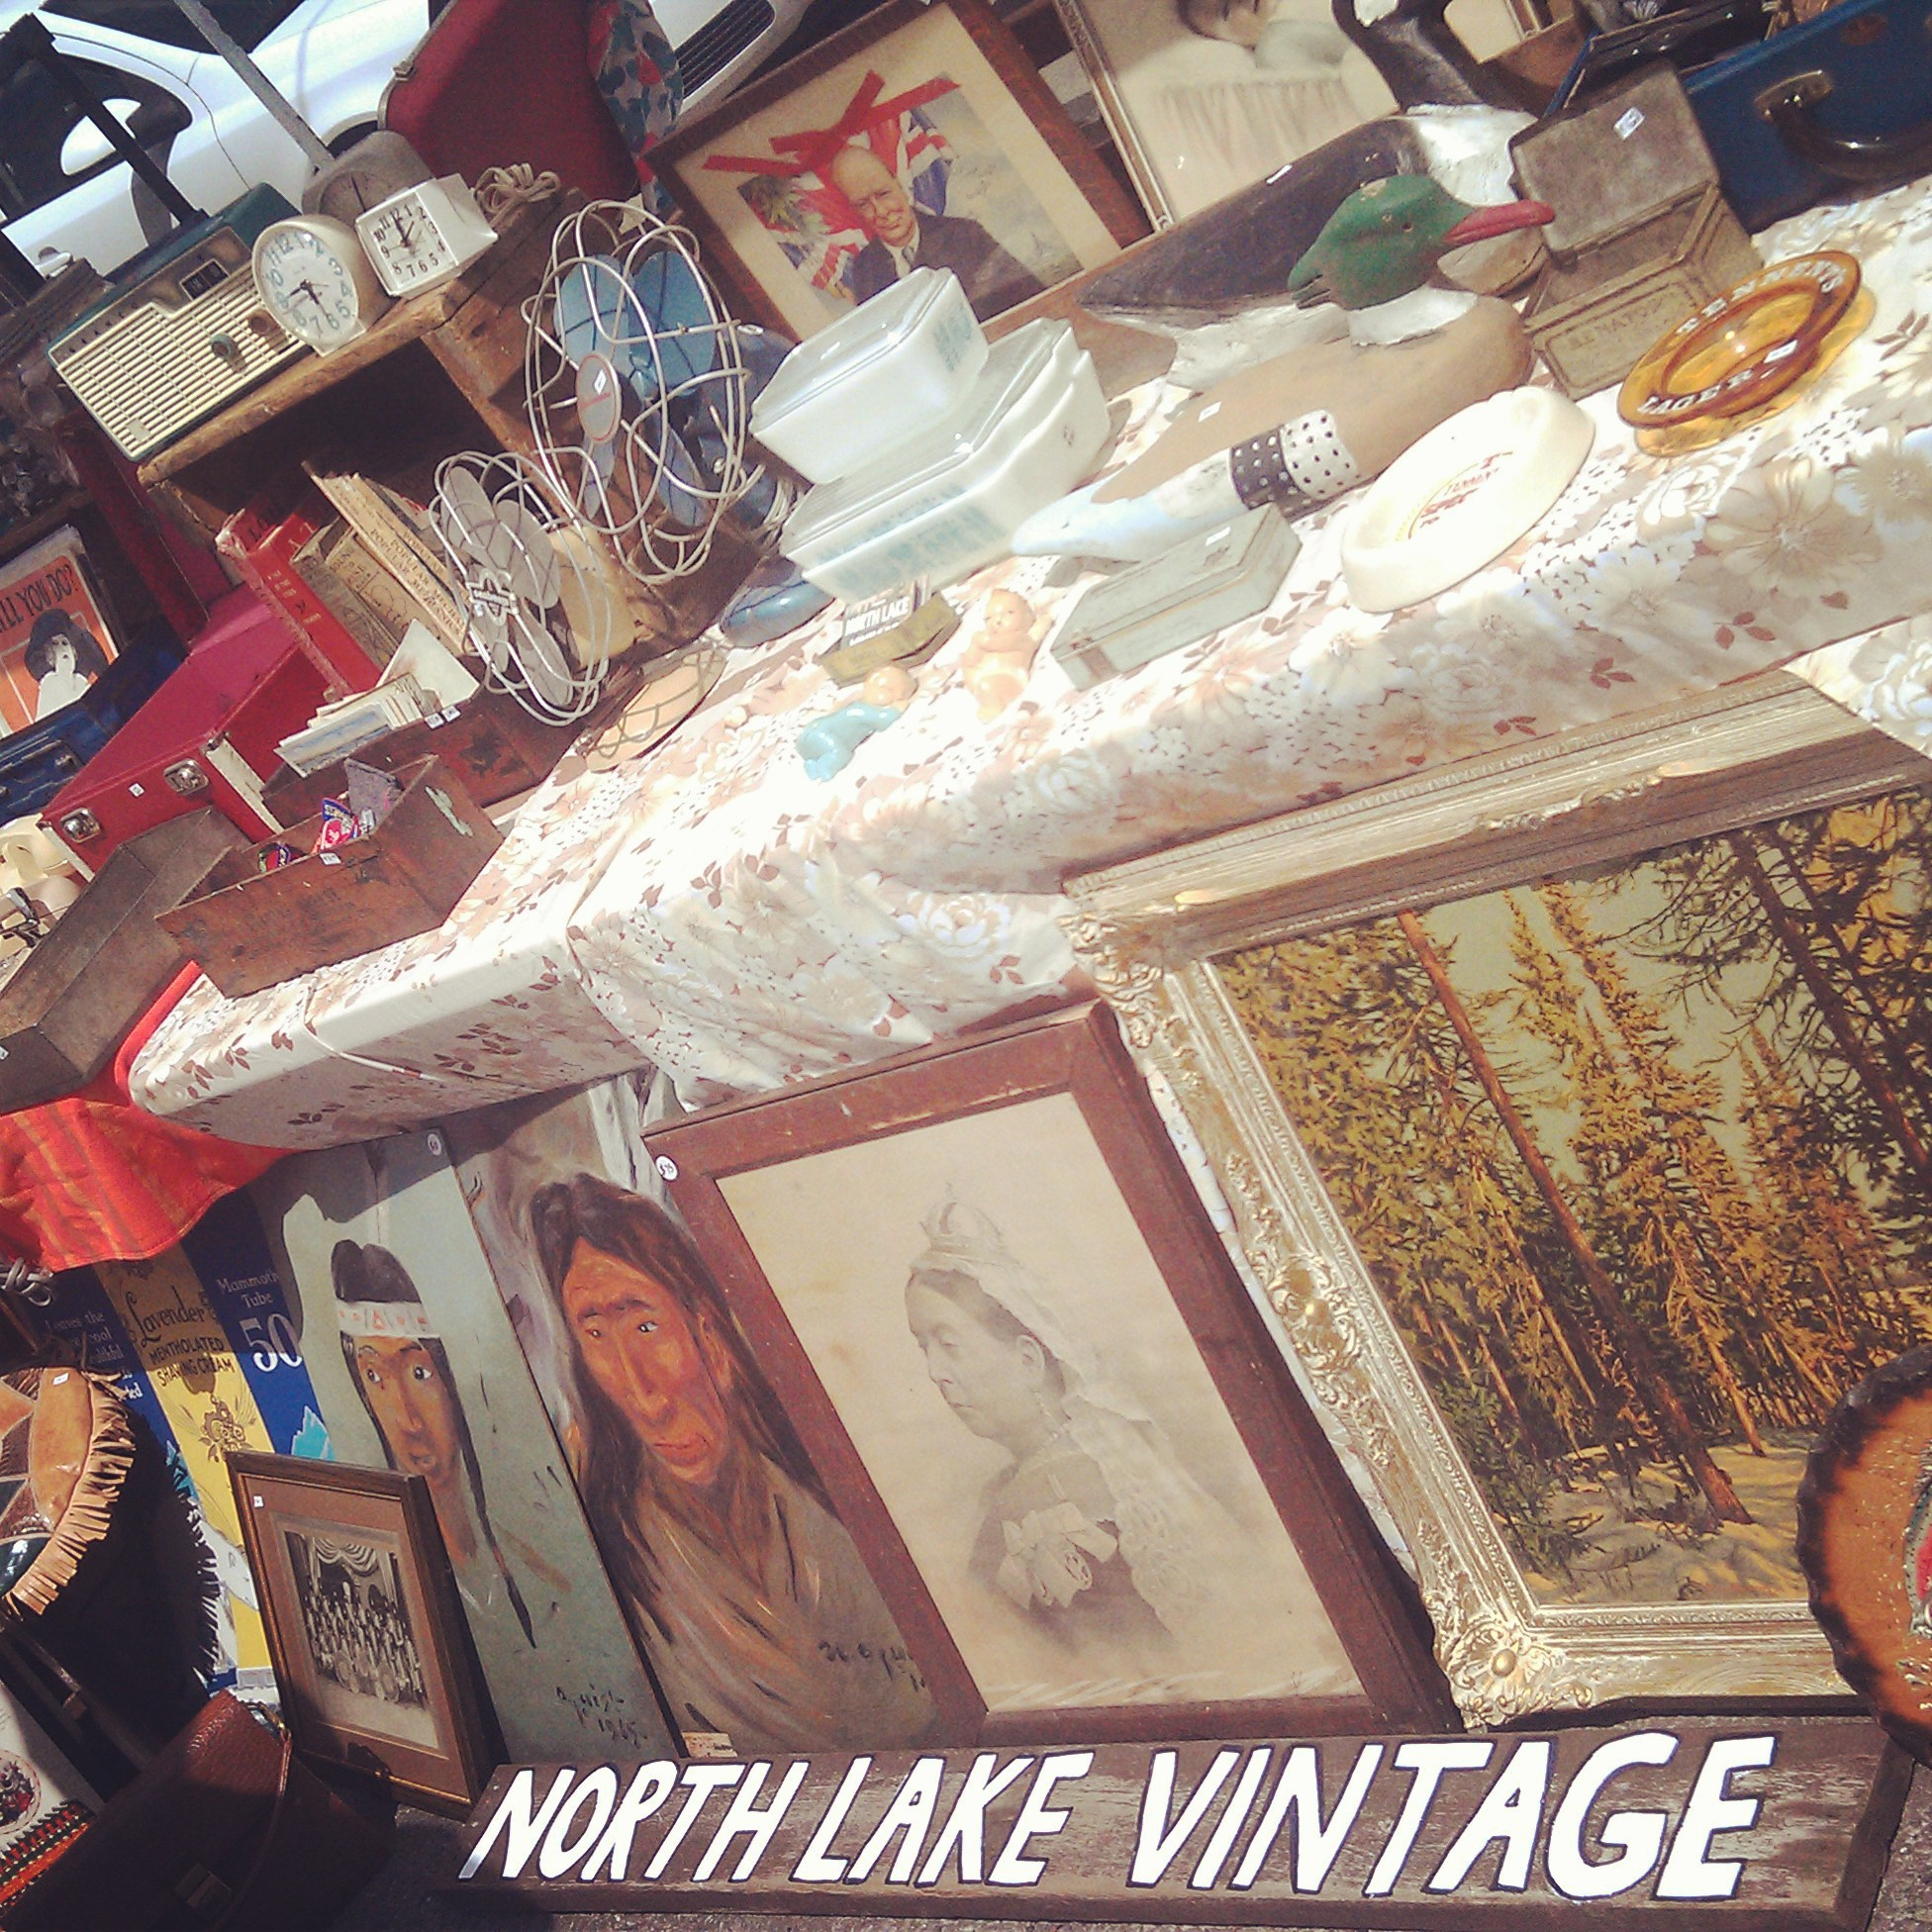 So many treasures from North Lake Vintage